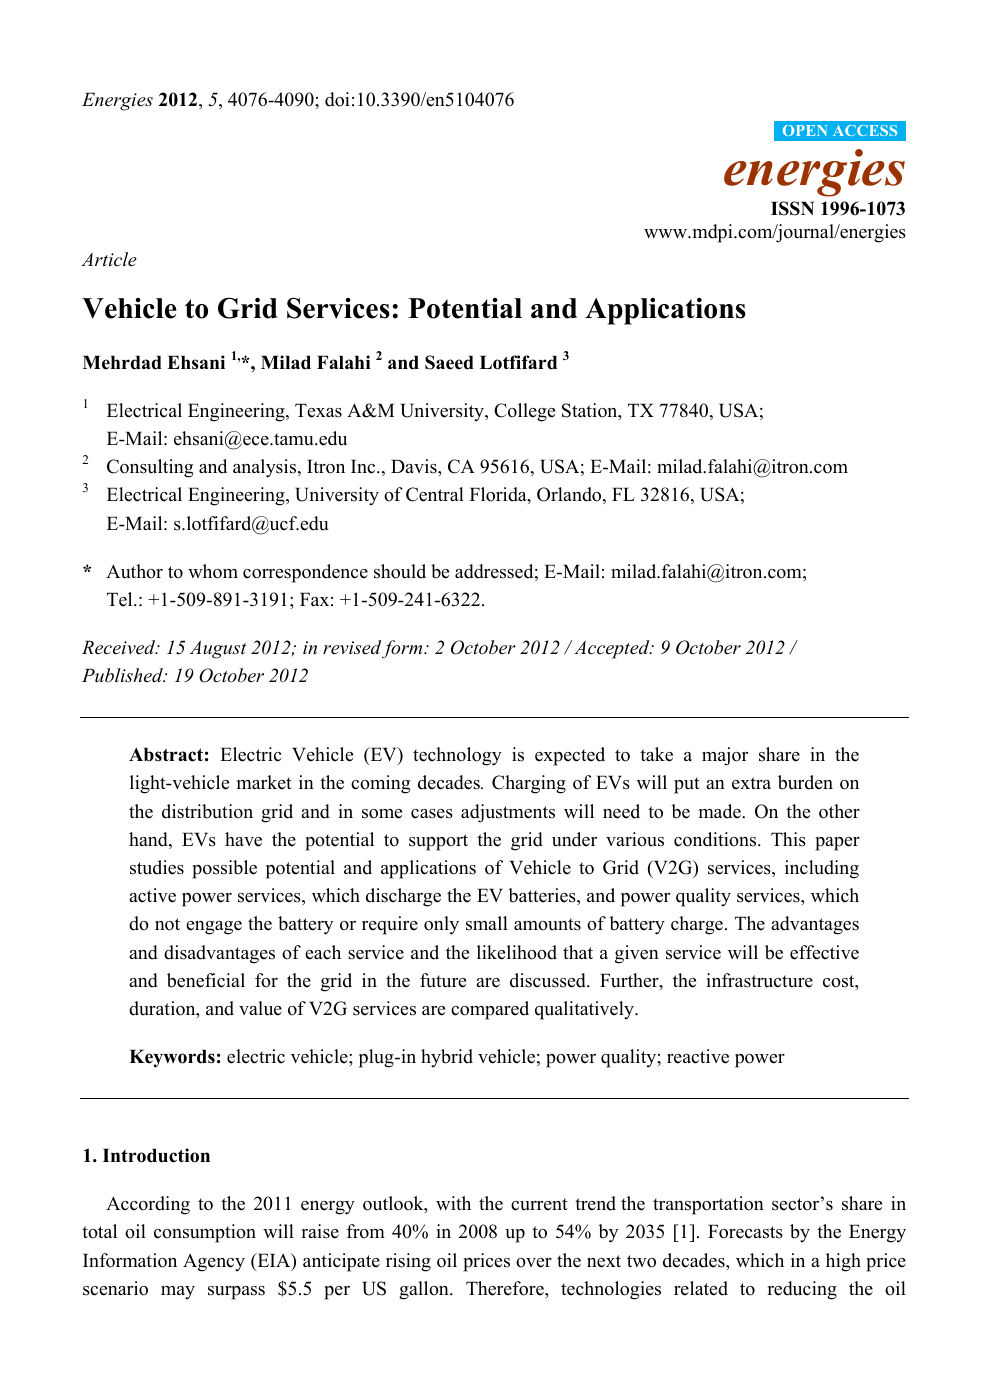 Vehicle to Grid Services: Potential and Applications – topic